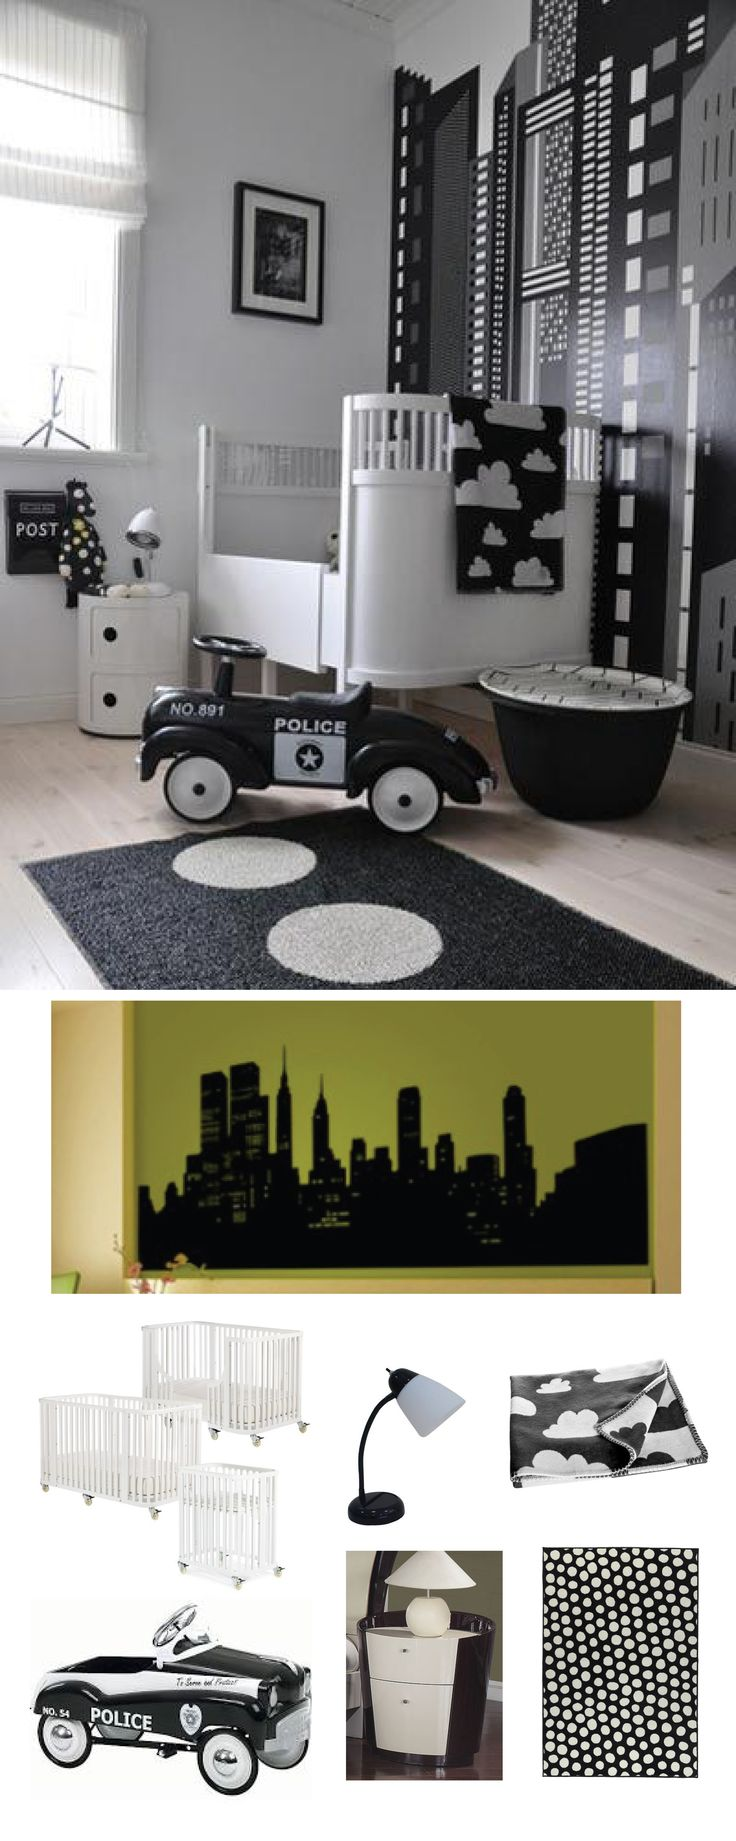 The ideal room for a child obsessed with Batman, this Gotham-like nursery is even equipped with awesome extras (like that retro toy police car!).